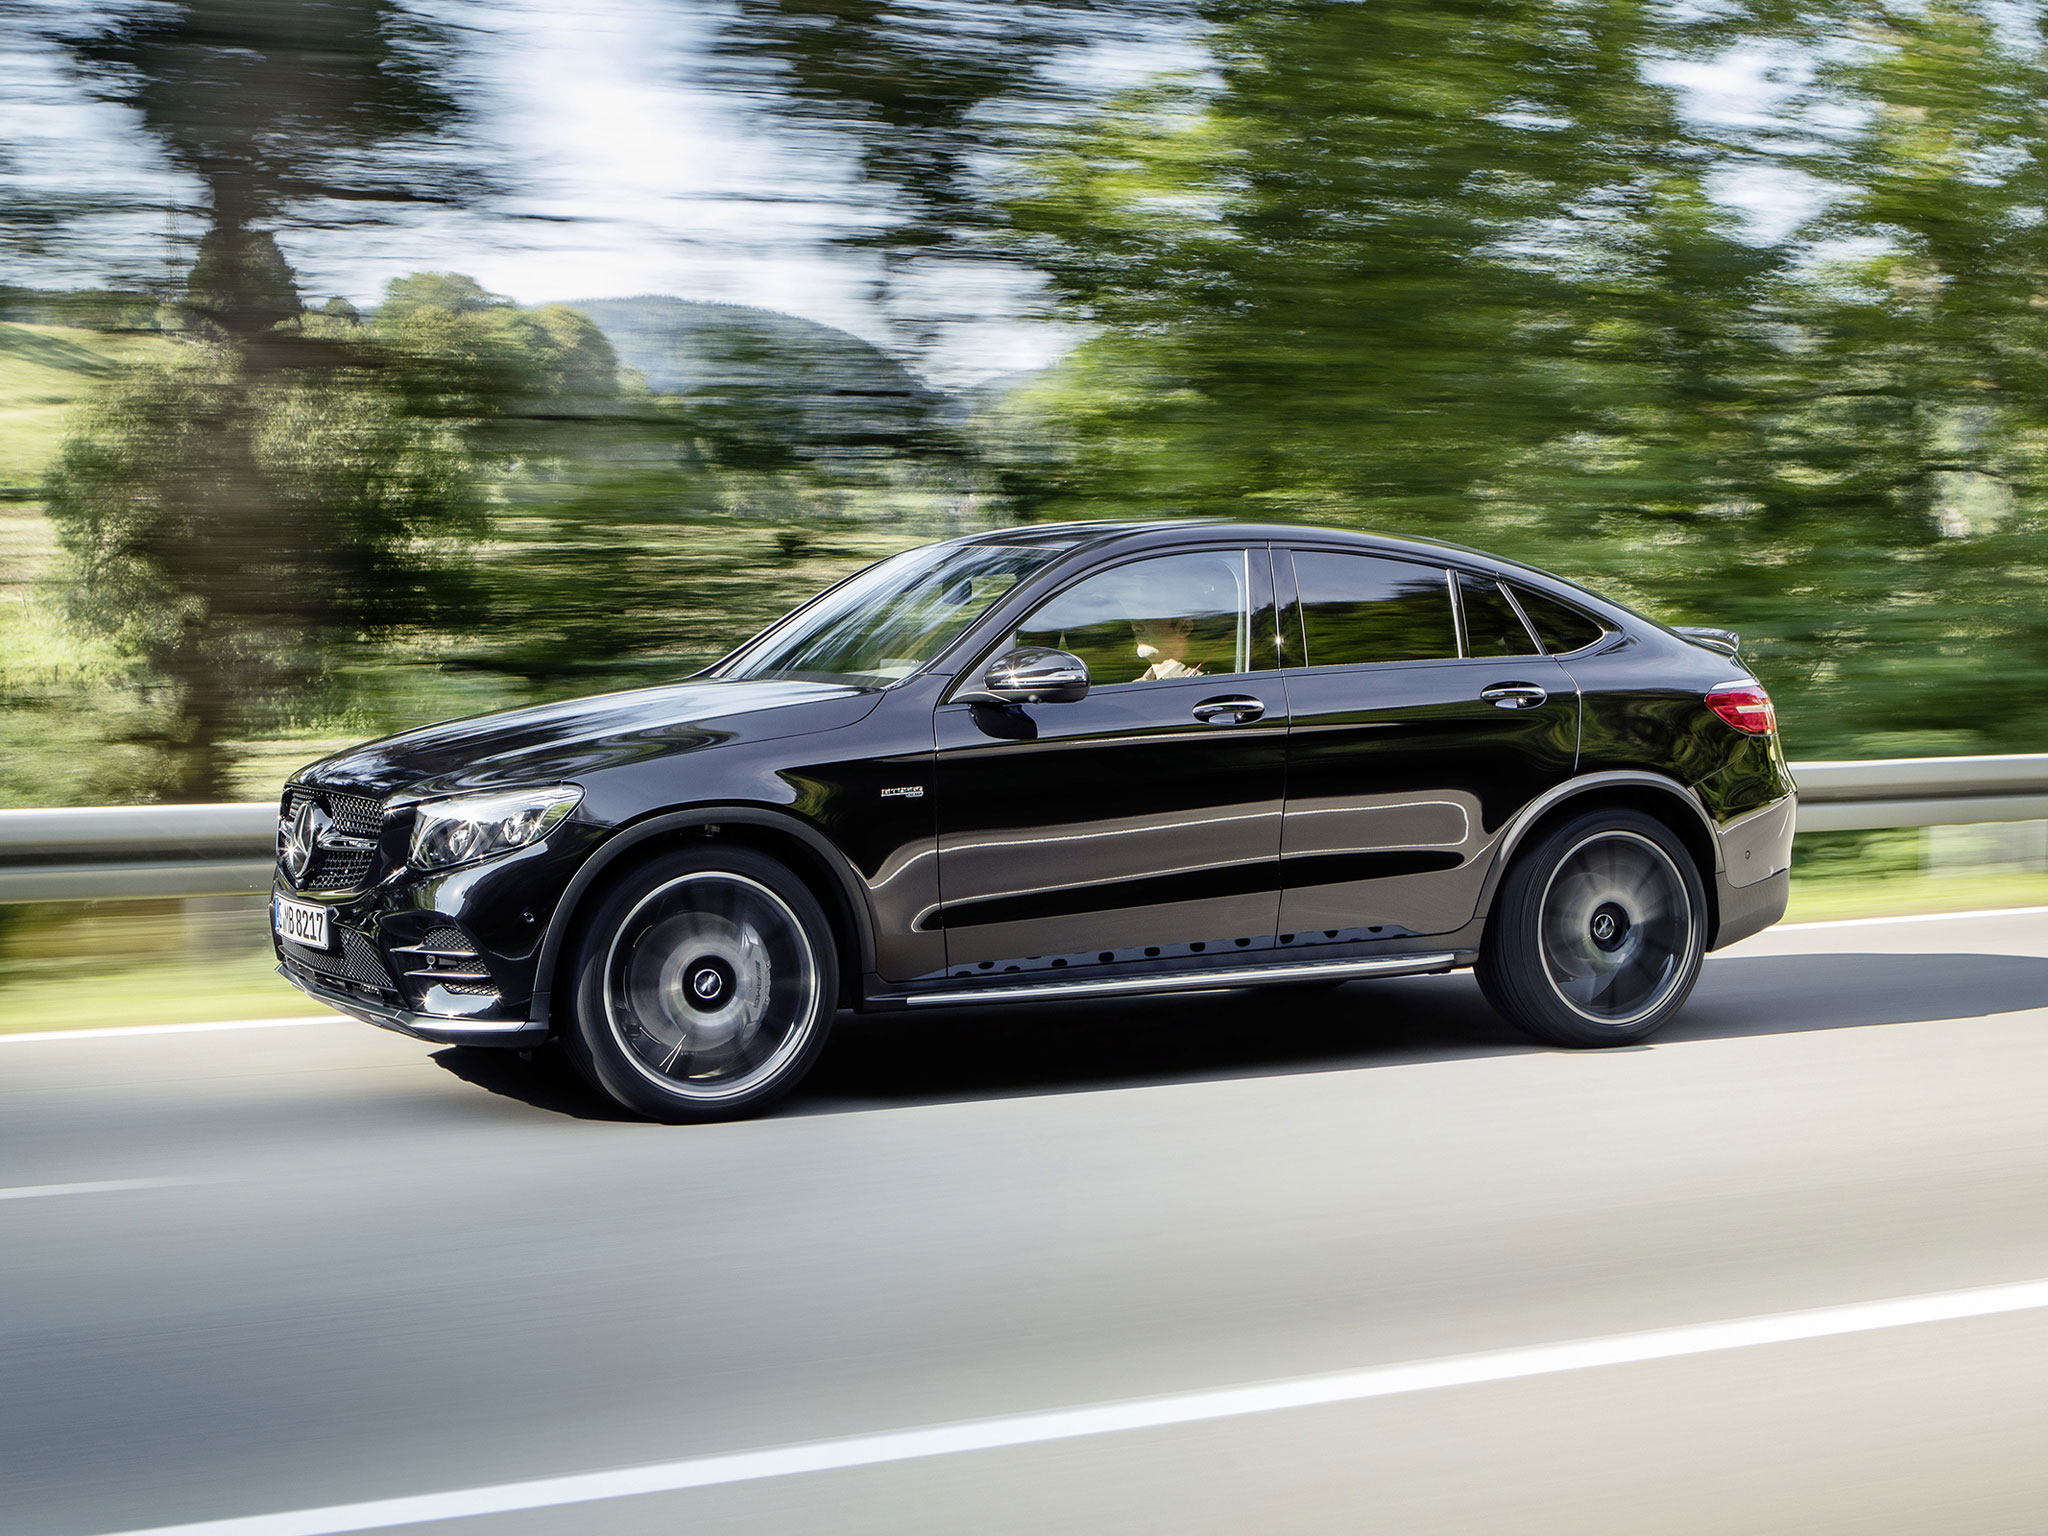 https://assets.mbusa.com/vcm/MB/DigitalAssets/FutureModels/Responsive/2017_GLC43_COUPE/Gallery/2017-GLC-COUPE-GLC43-AMG-FUTURE-GALLERY-002-WR-T.jpg